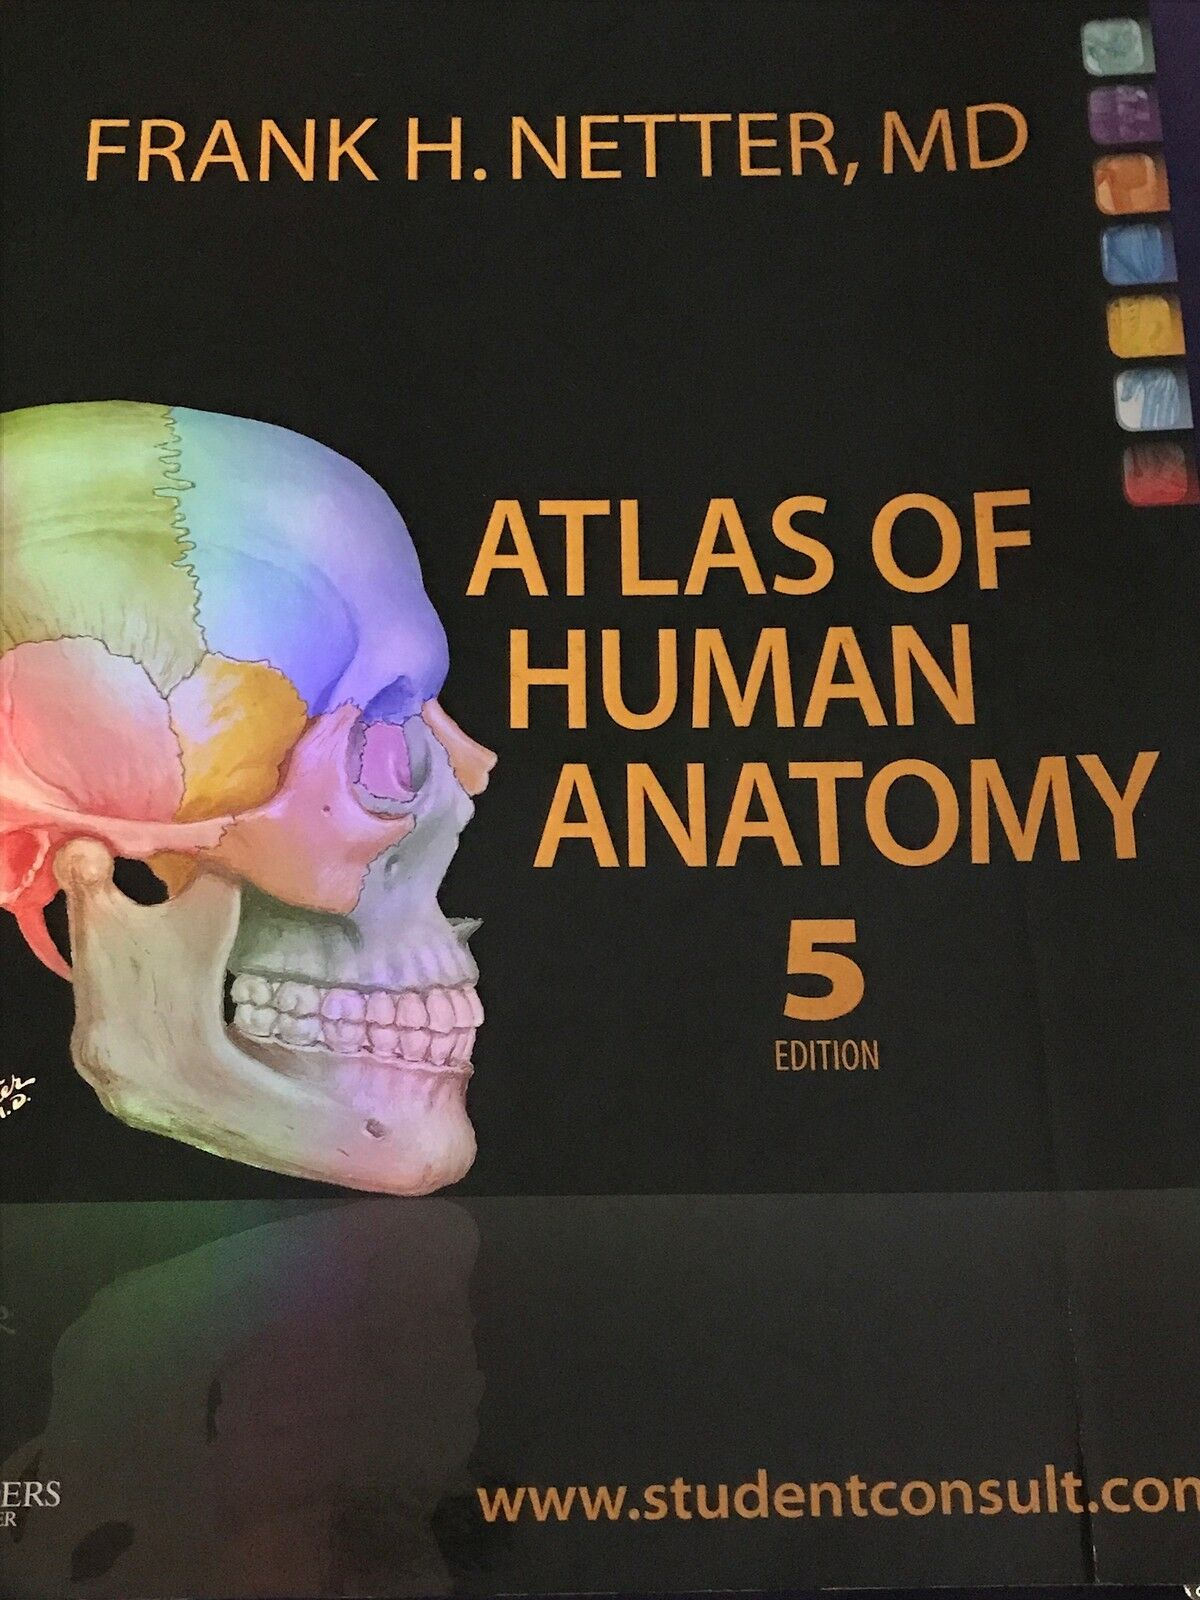 Best Atlas Of Human Anatomy Netter Deals Compare Prices On Dealsan